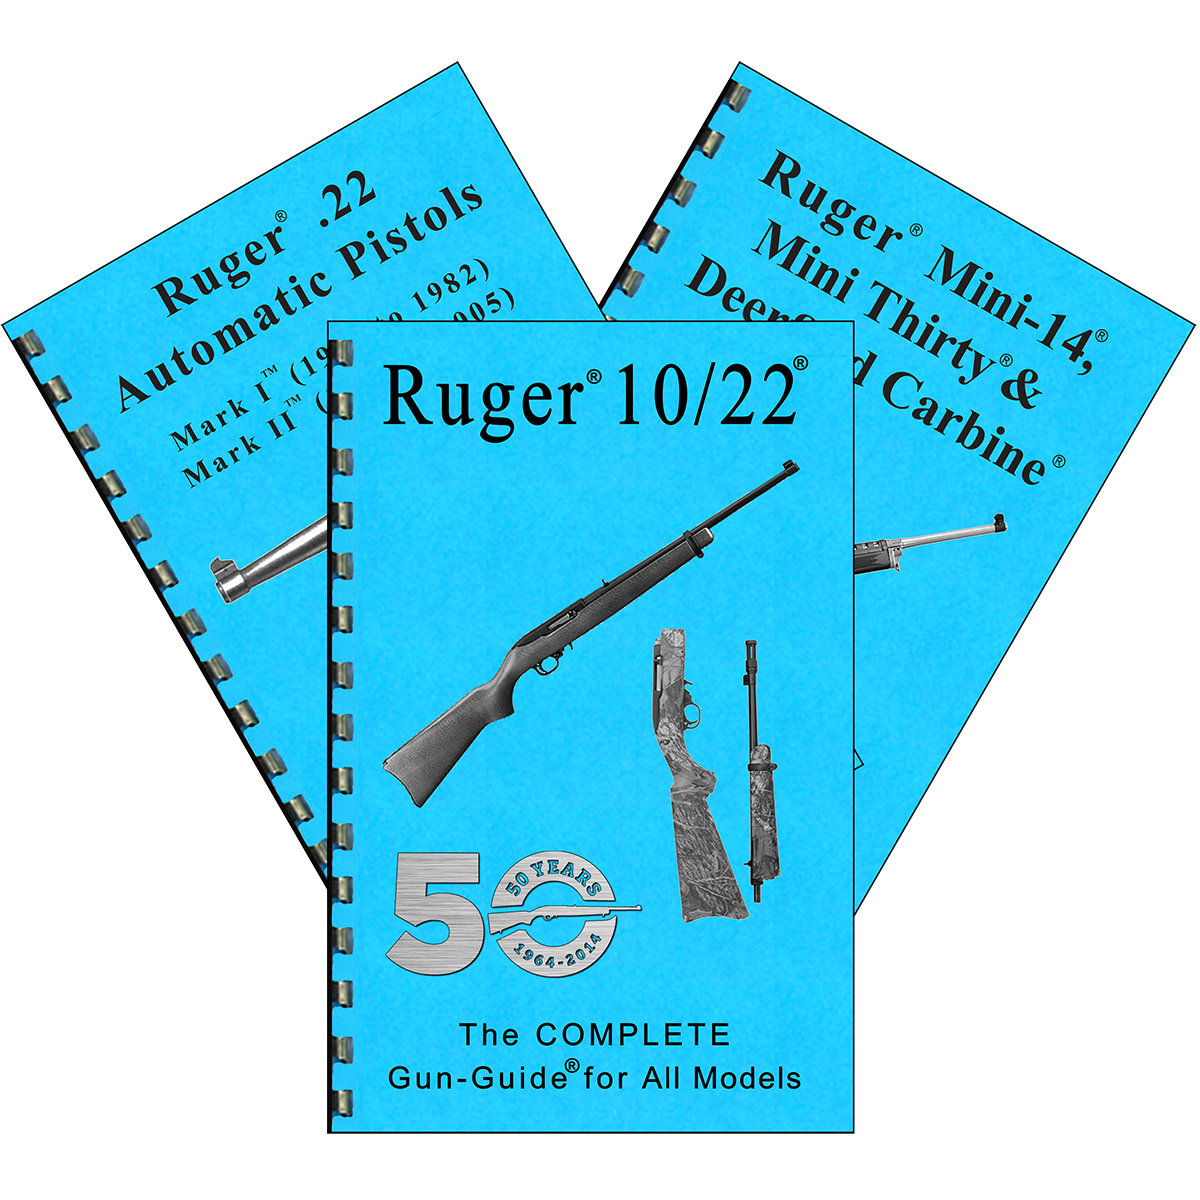 2019 DEALER RUGER COMPLETE GUIDES (3)